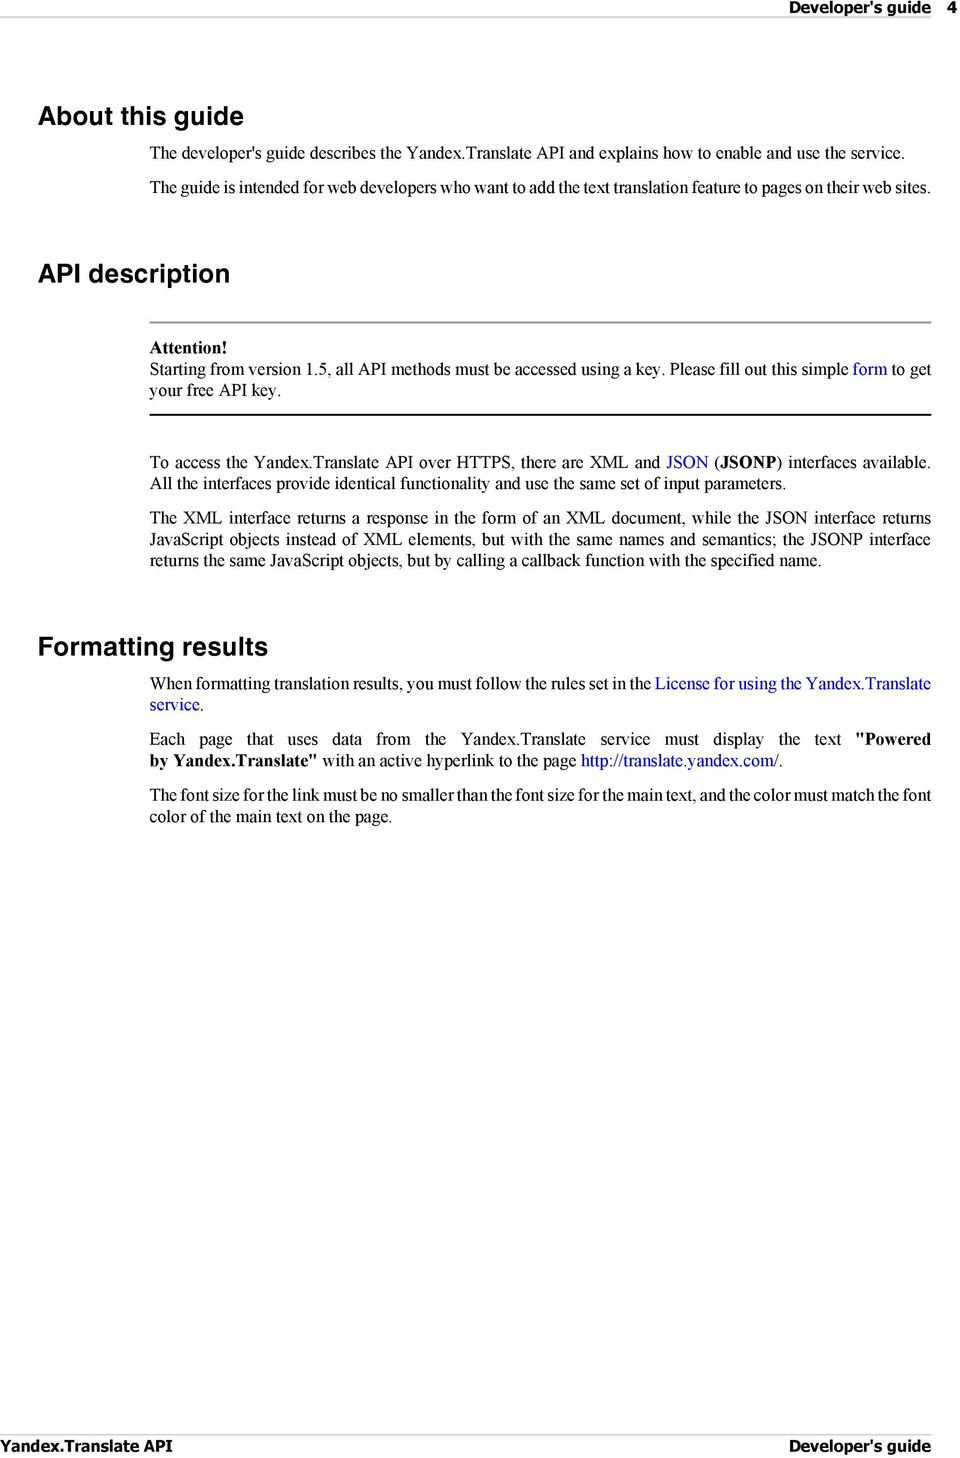 5, all API methods must be accessed using a key. Please fill out this simple form to get your free API key. To access the over HTTPS, there are XML and JSON (JSONP) interfaces available.